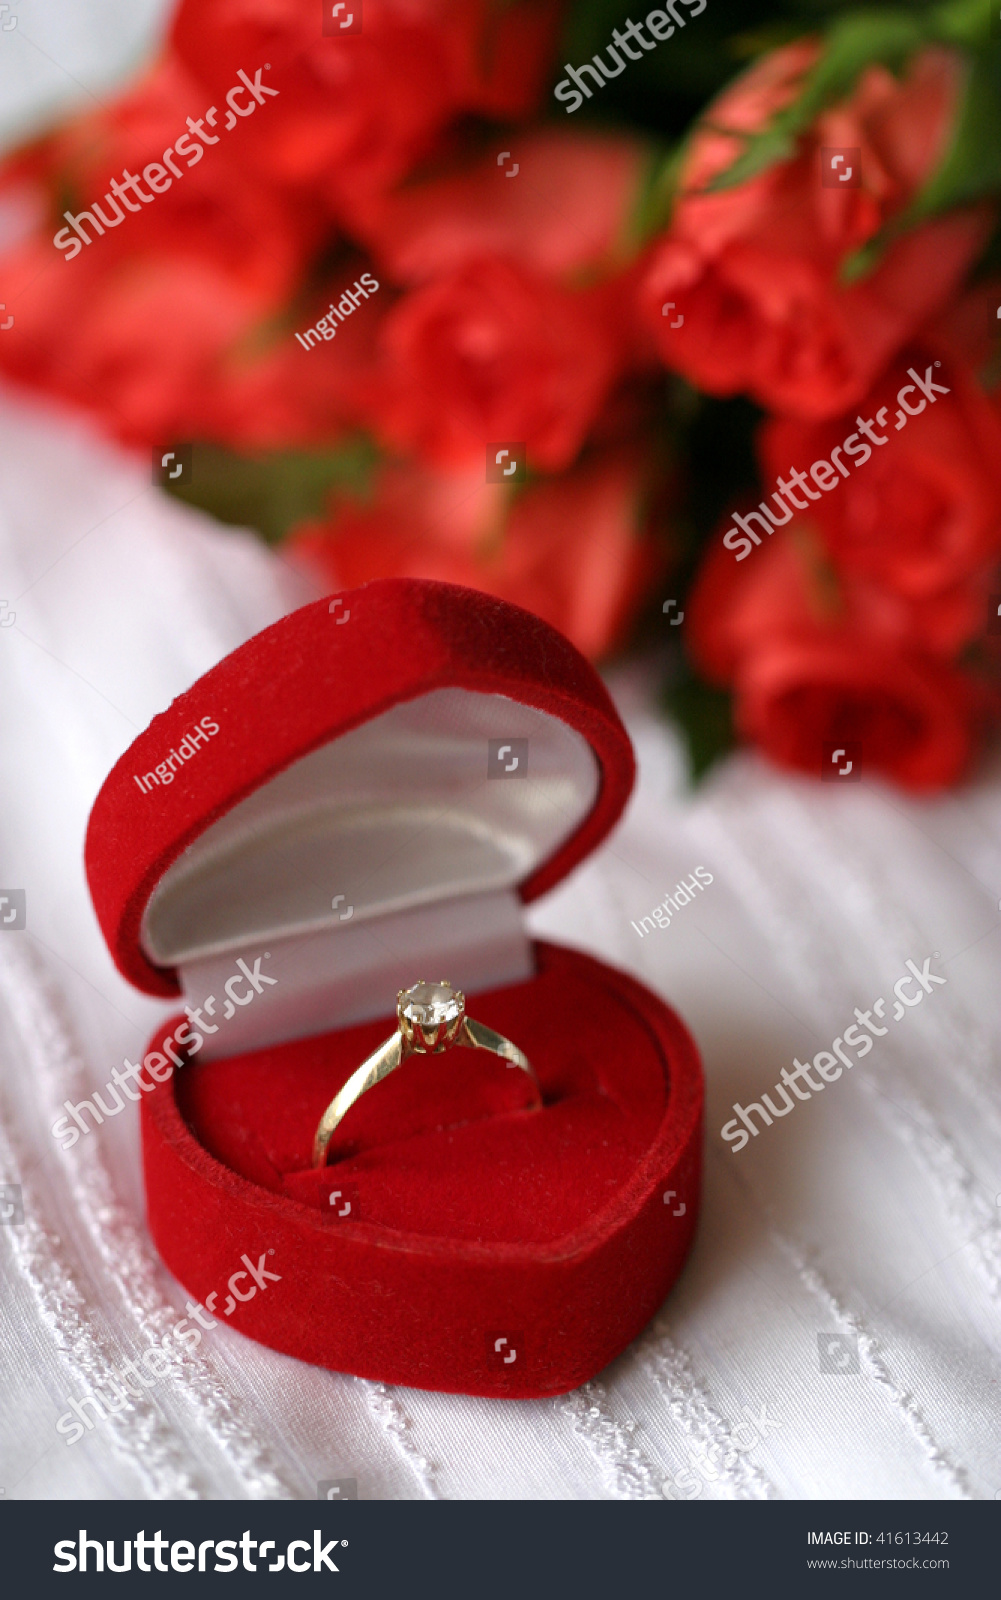 Golden engagement ring heart shaped box stock photo for Heart shaped engagement ring box